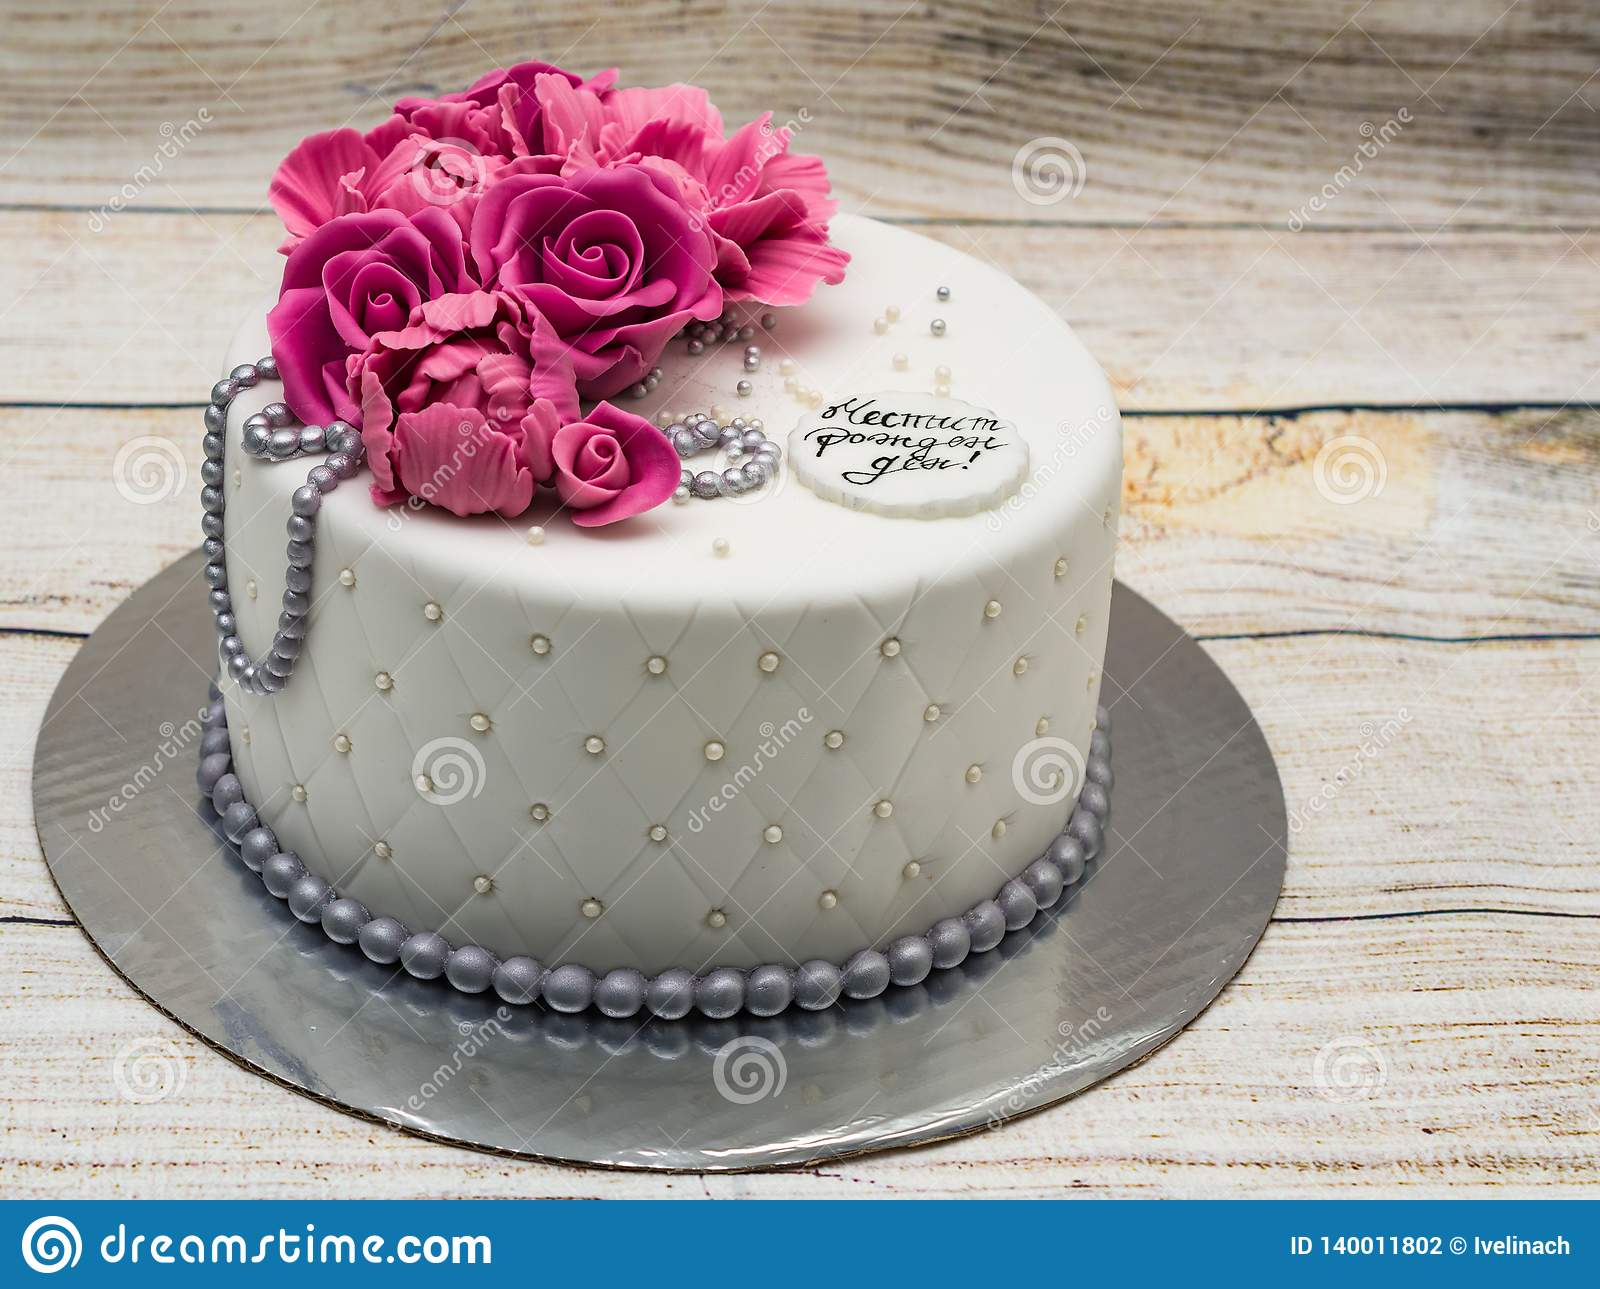 Birthday Cake With Fondant Flowers Roses And Peonies And Silver Pearls Inscription Happy Birthday Stock Photo Image Of Colors Color 140011802